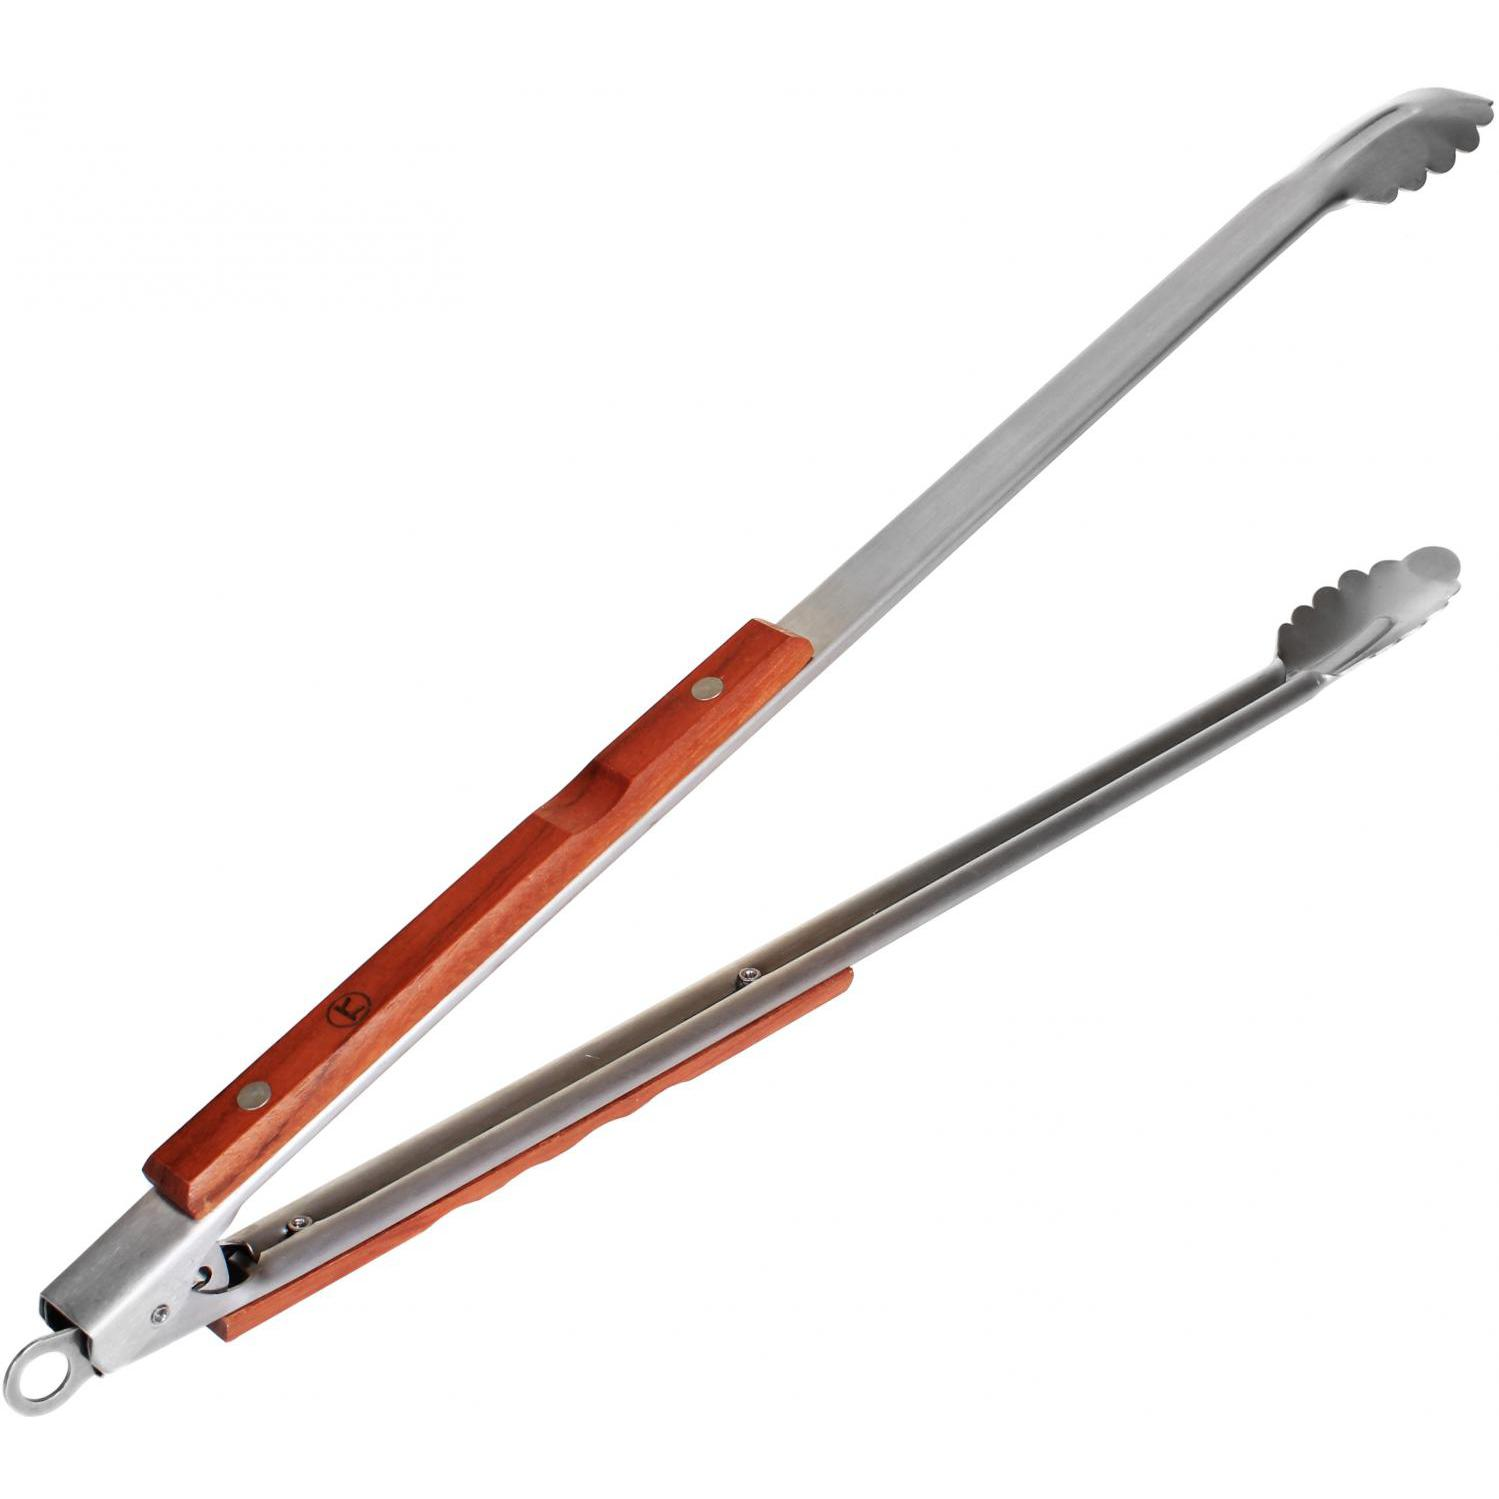 D D Tongs: Fox Run Outset Extra Long Stainless Steel Barbecue BBQ